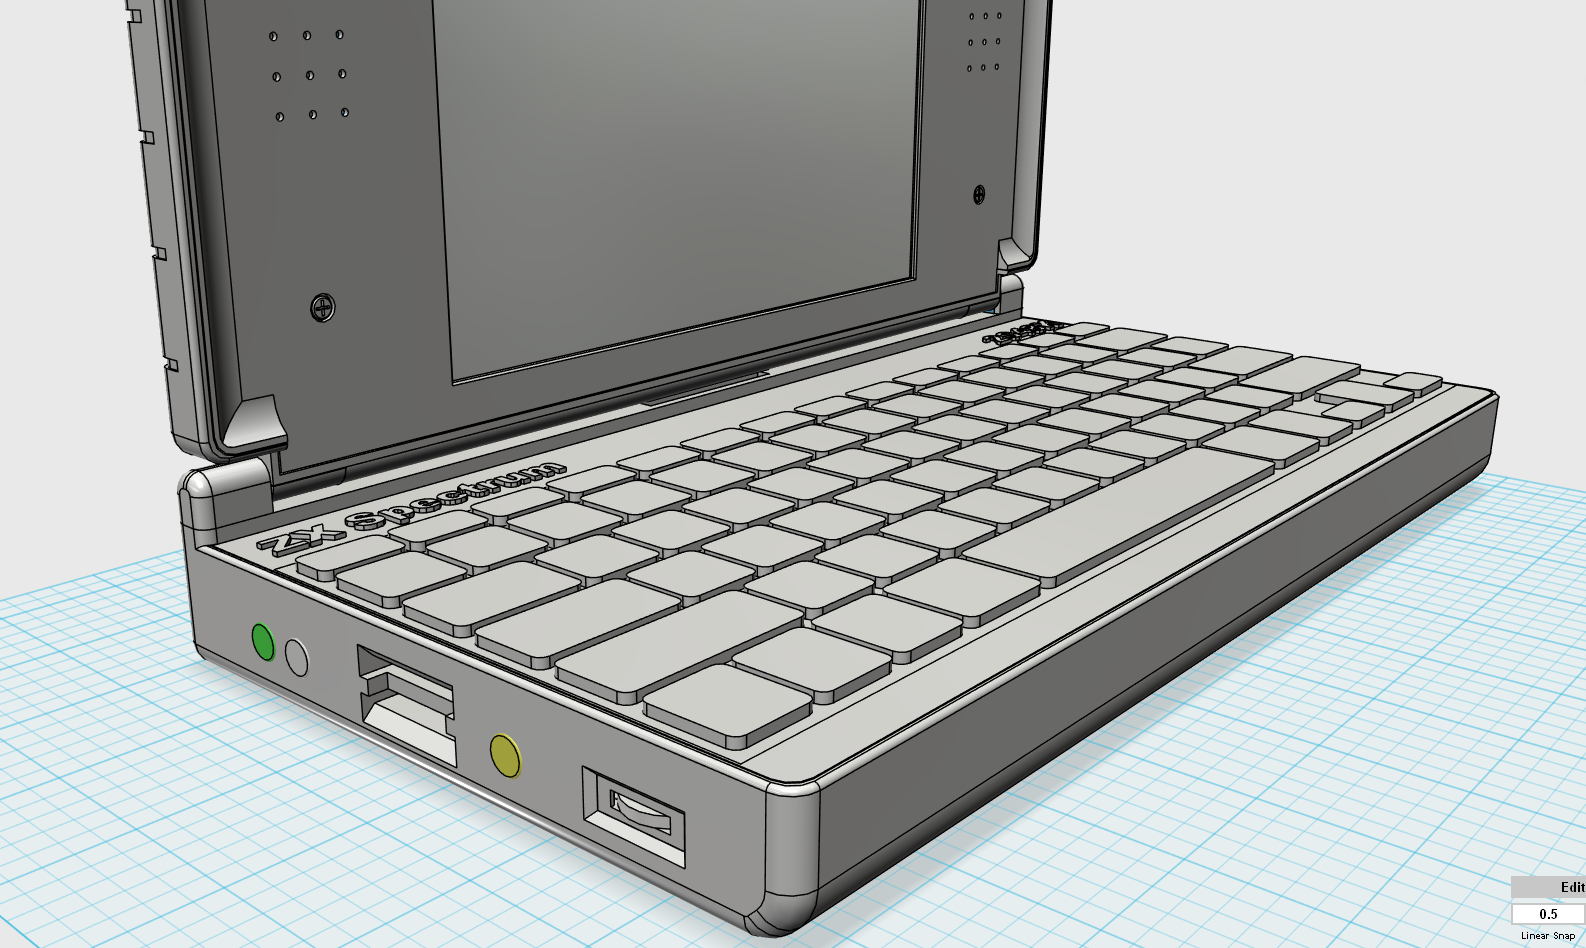 ZX Spectrum Next Laptop Design 2